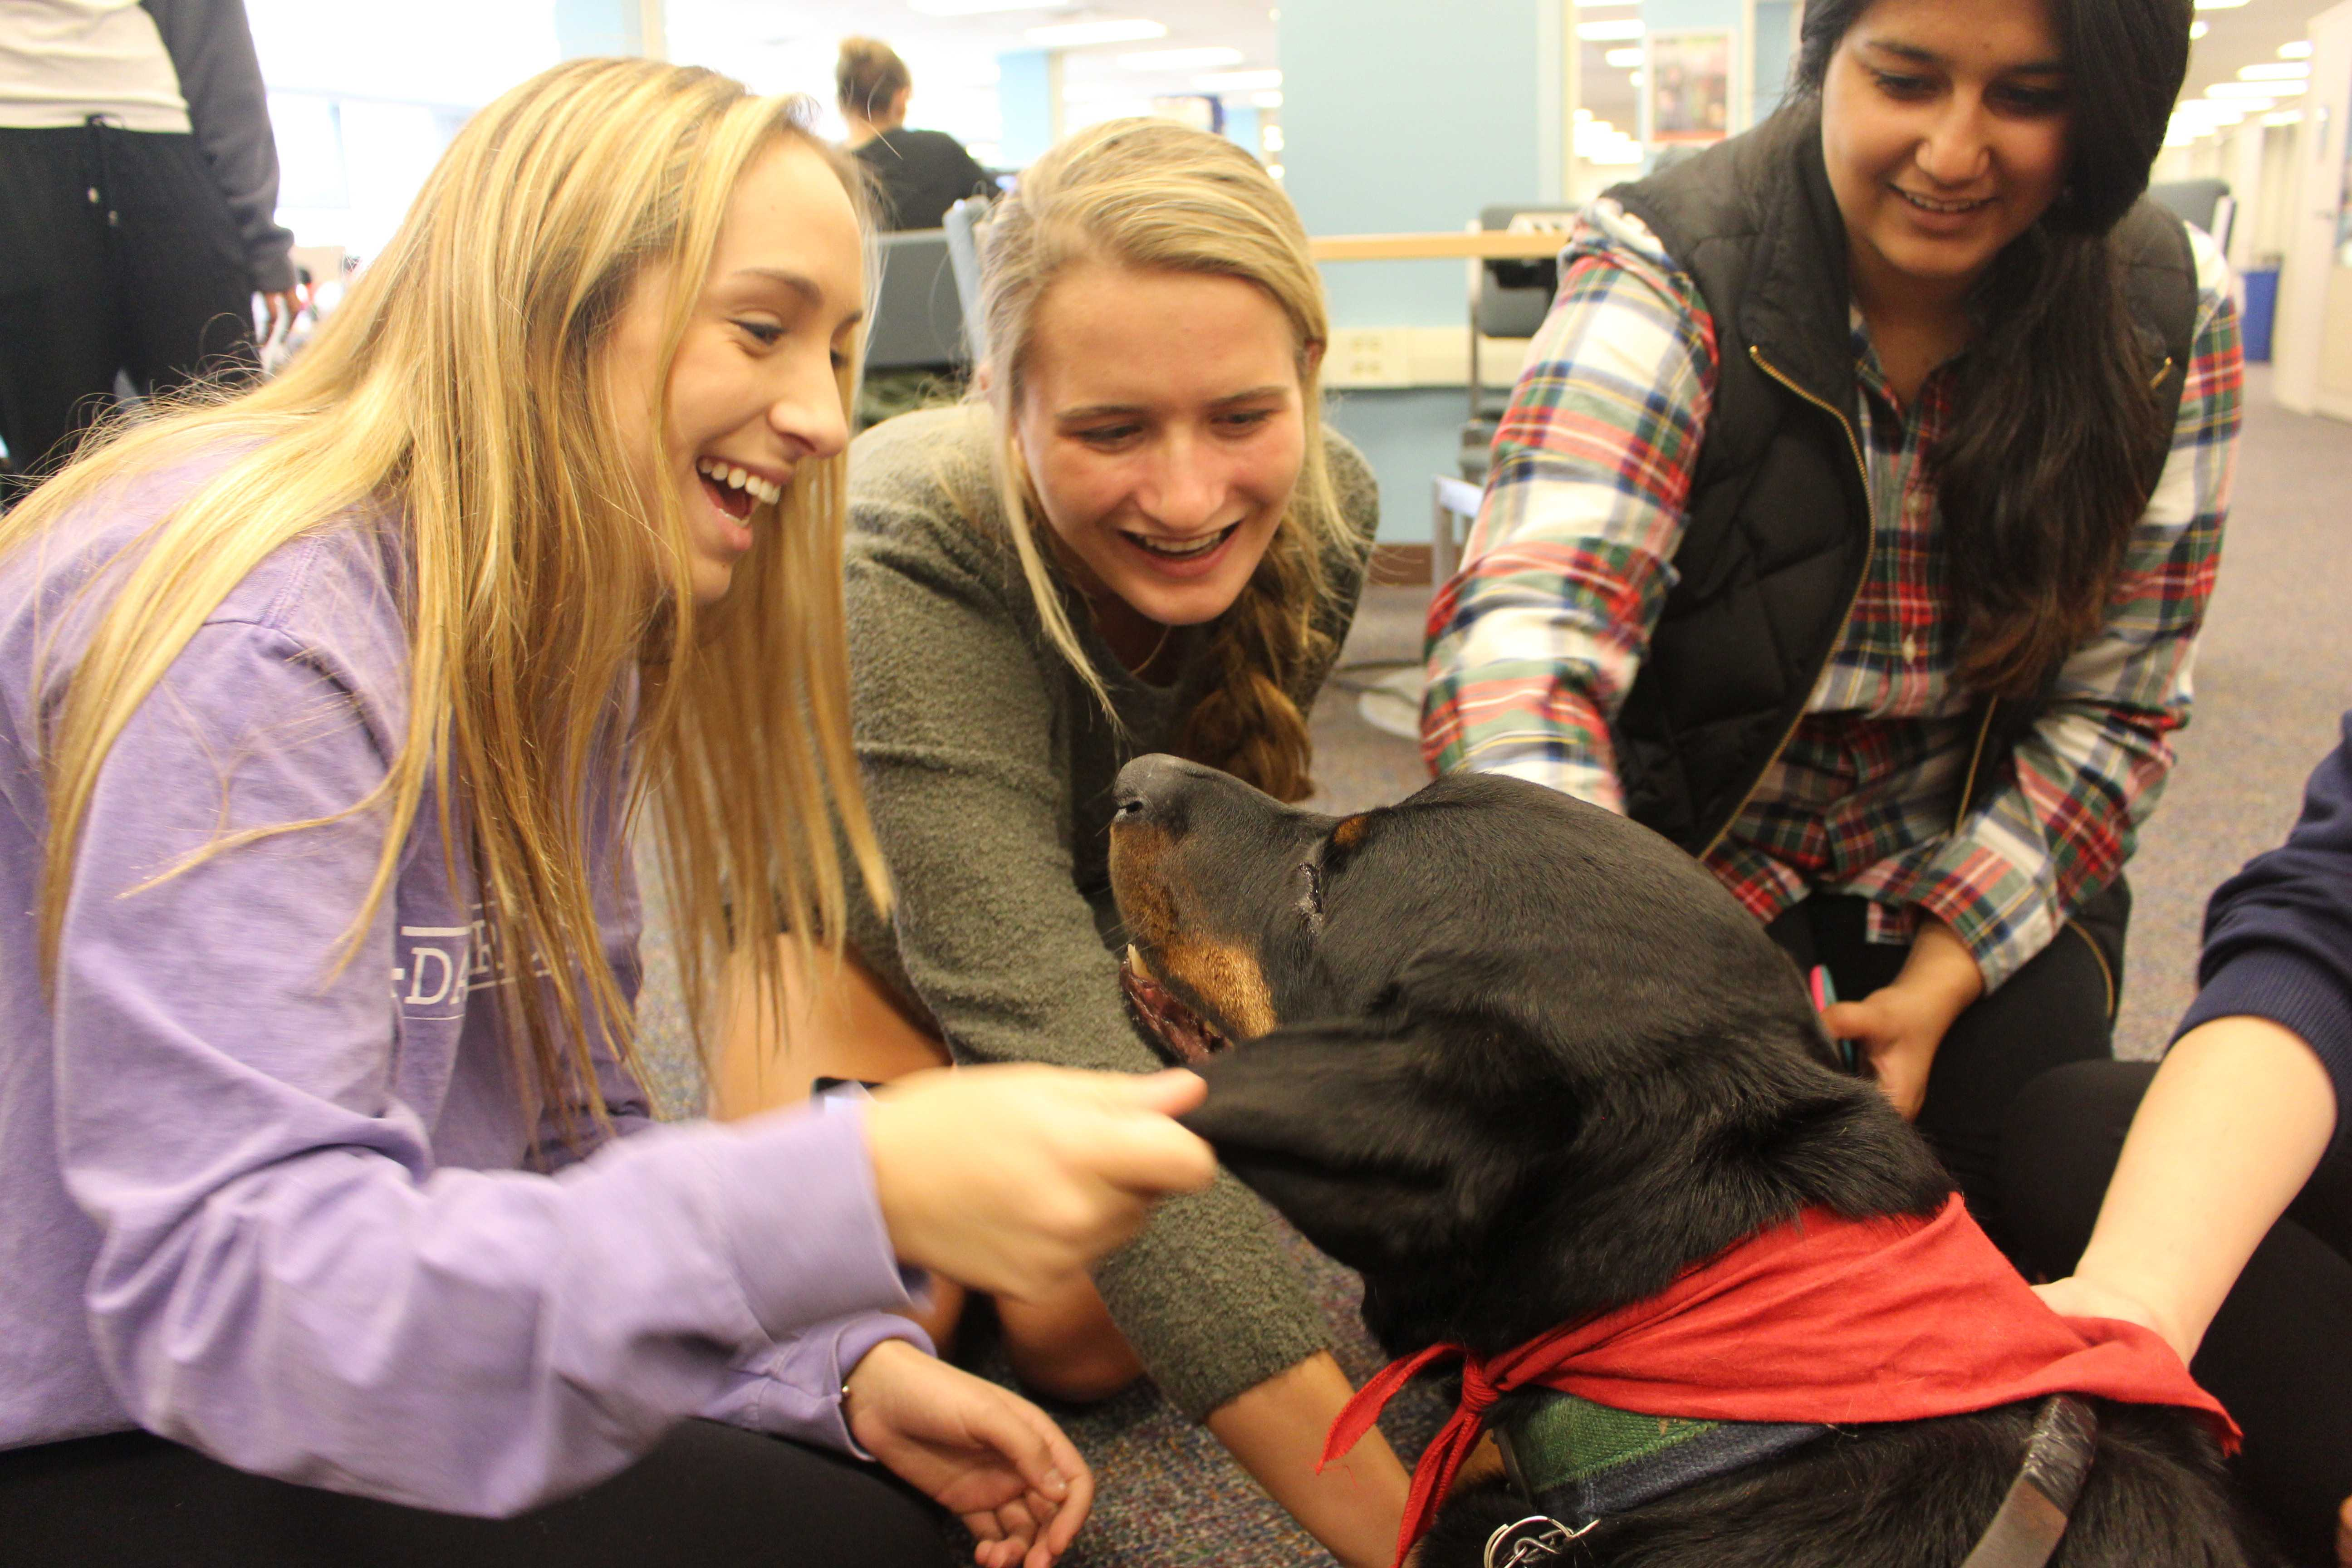 %3Cp%3EVolunteer+therapy+dogs+and+their+owners+visit+campus+libraries+to+help+students+relieve+stress+during+finals+week.%3C%2Fp%3E